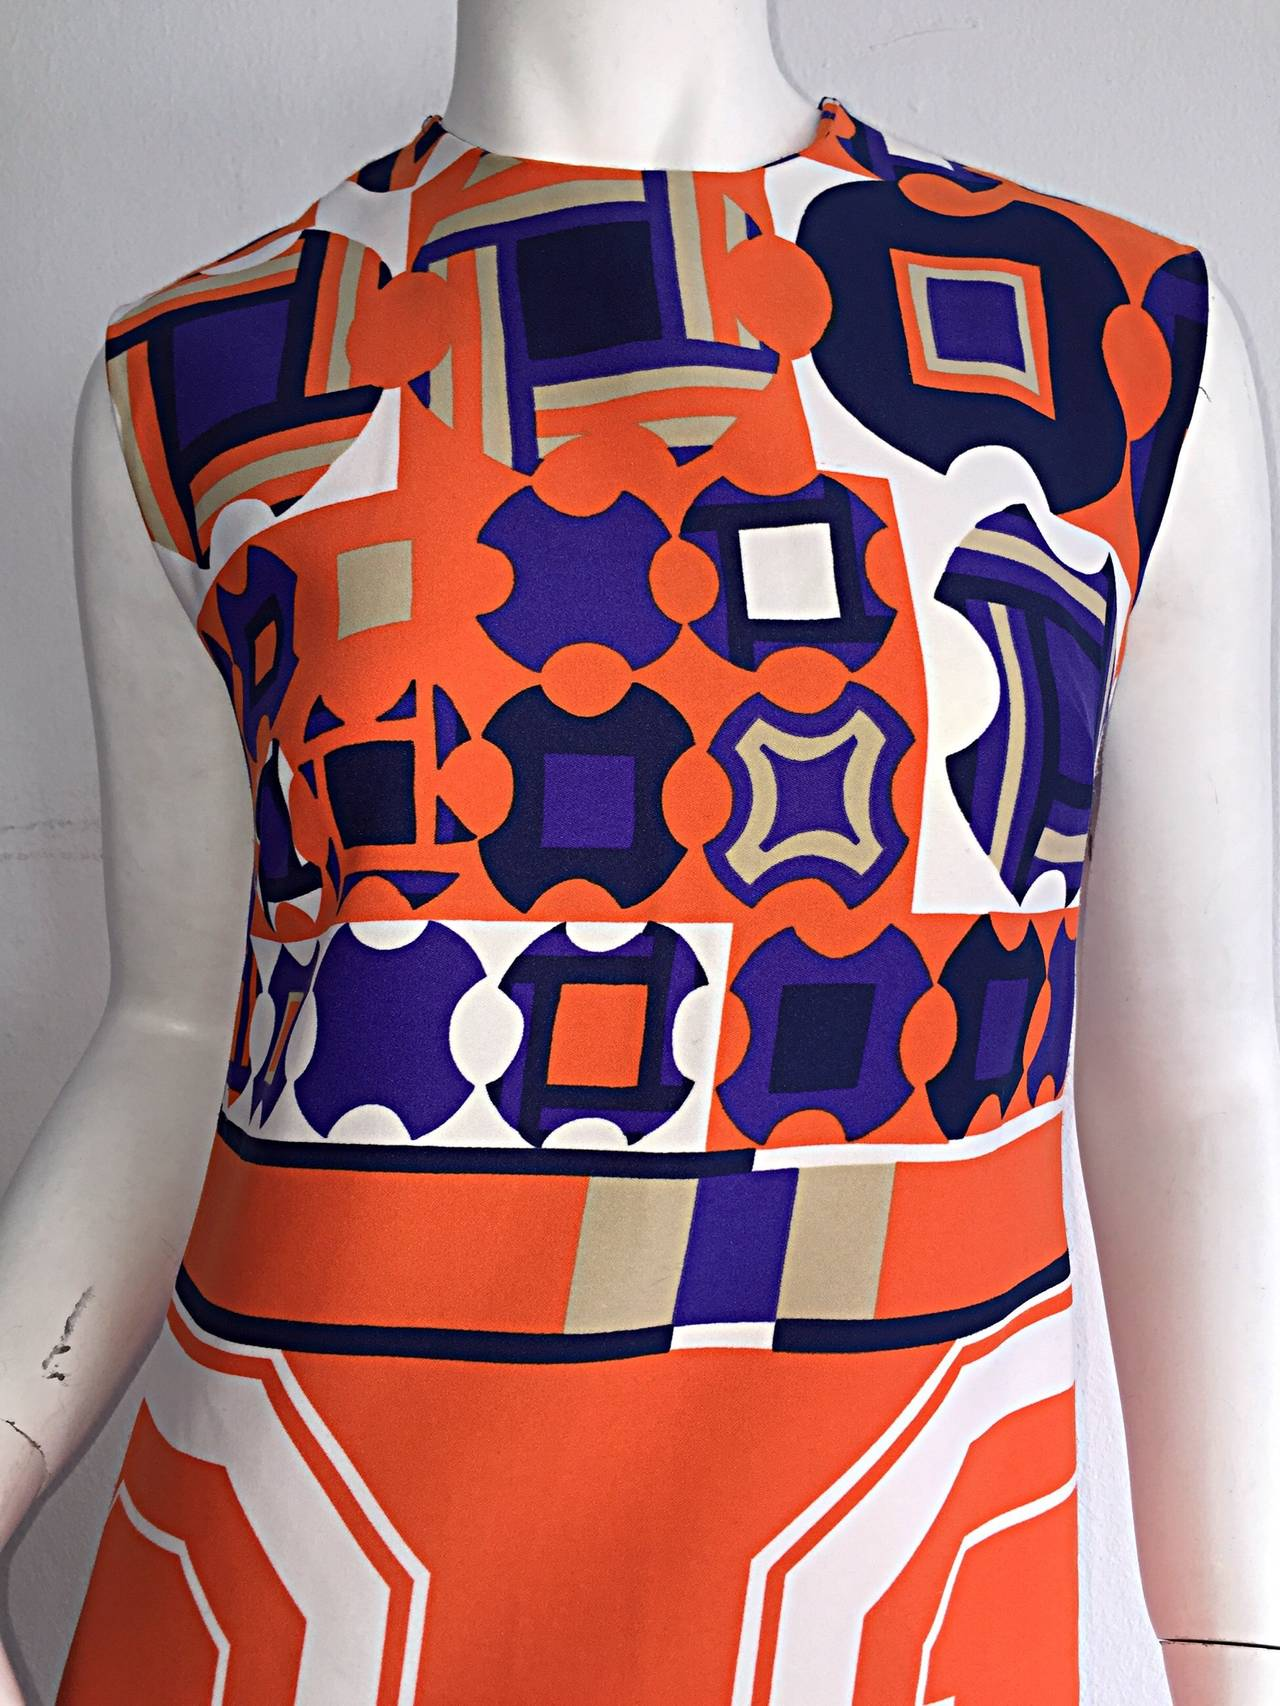 1960s Vintage Lanvin Op - Art Geometric Mod ' Buckle ' Print Shift 3 - D Dress In Excellent Condition For Sale In San Francisco, CA